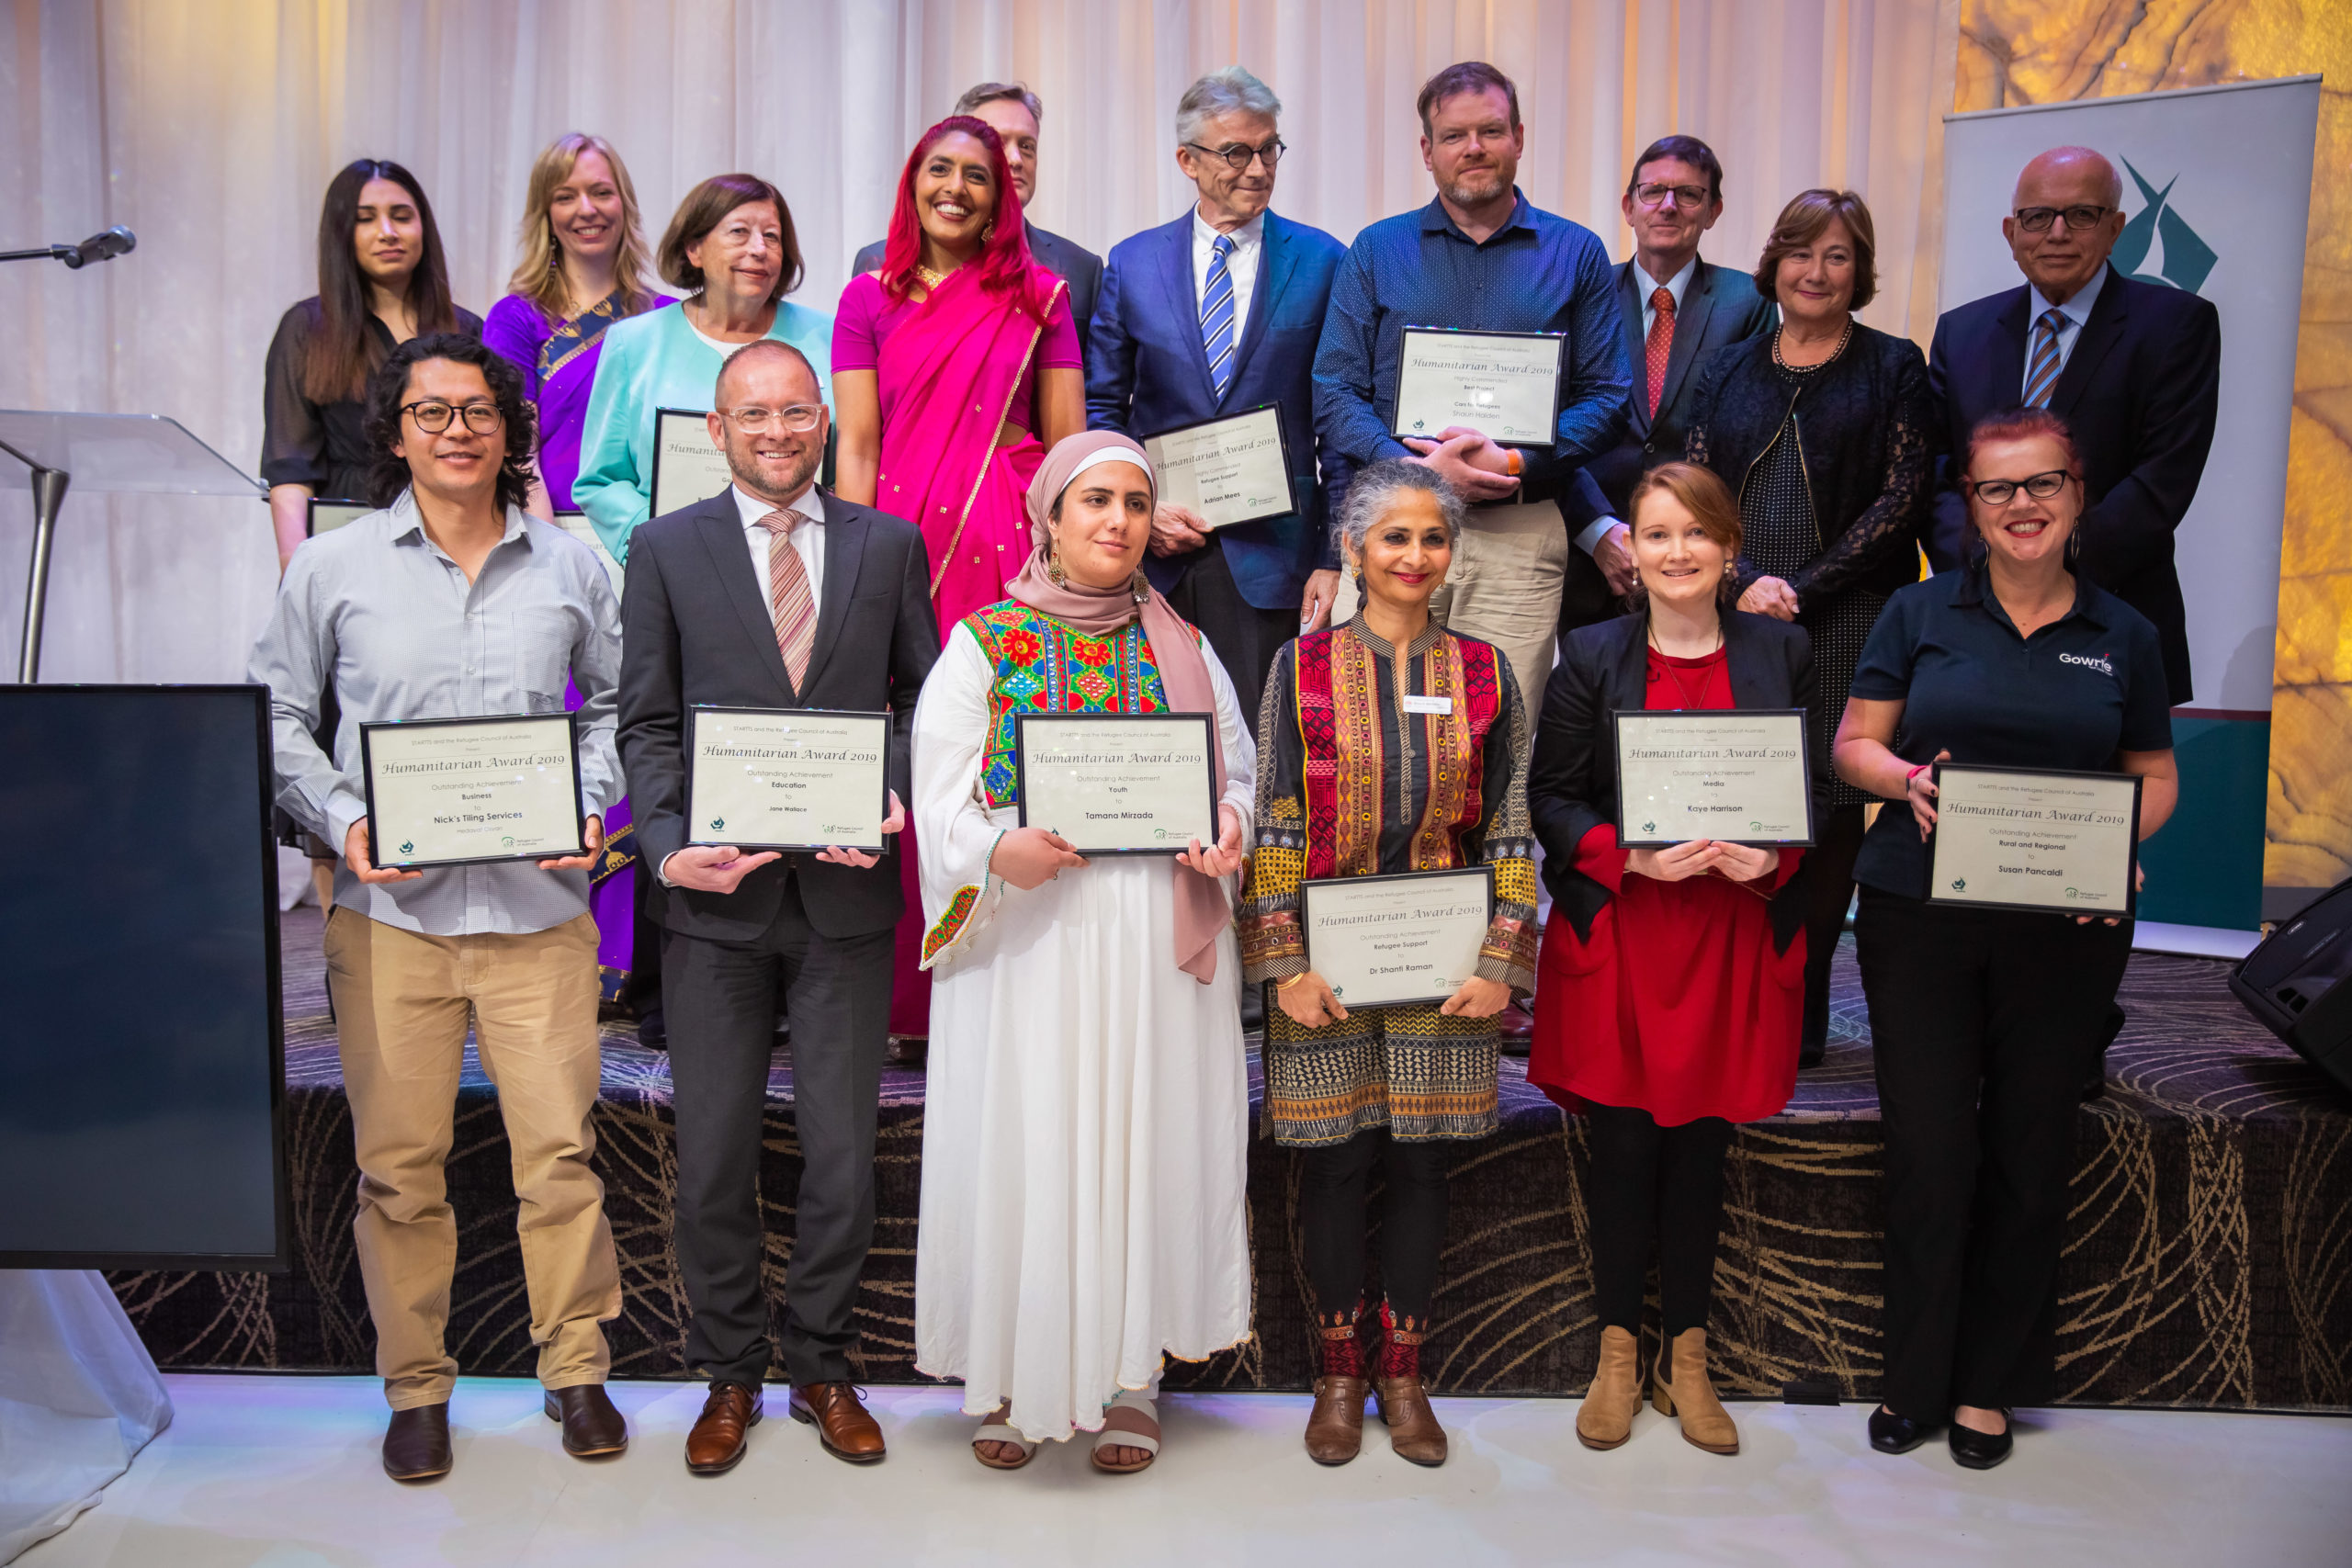 STARTTS Congratulates The 2019 NSW Humanitarian Award Winners With Refugee Council Of Australia